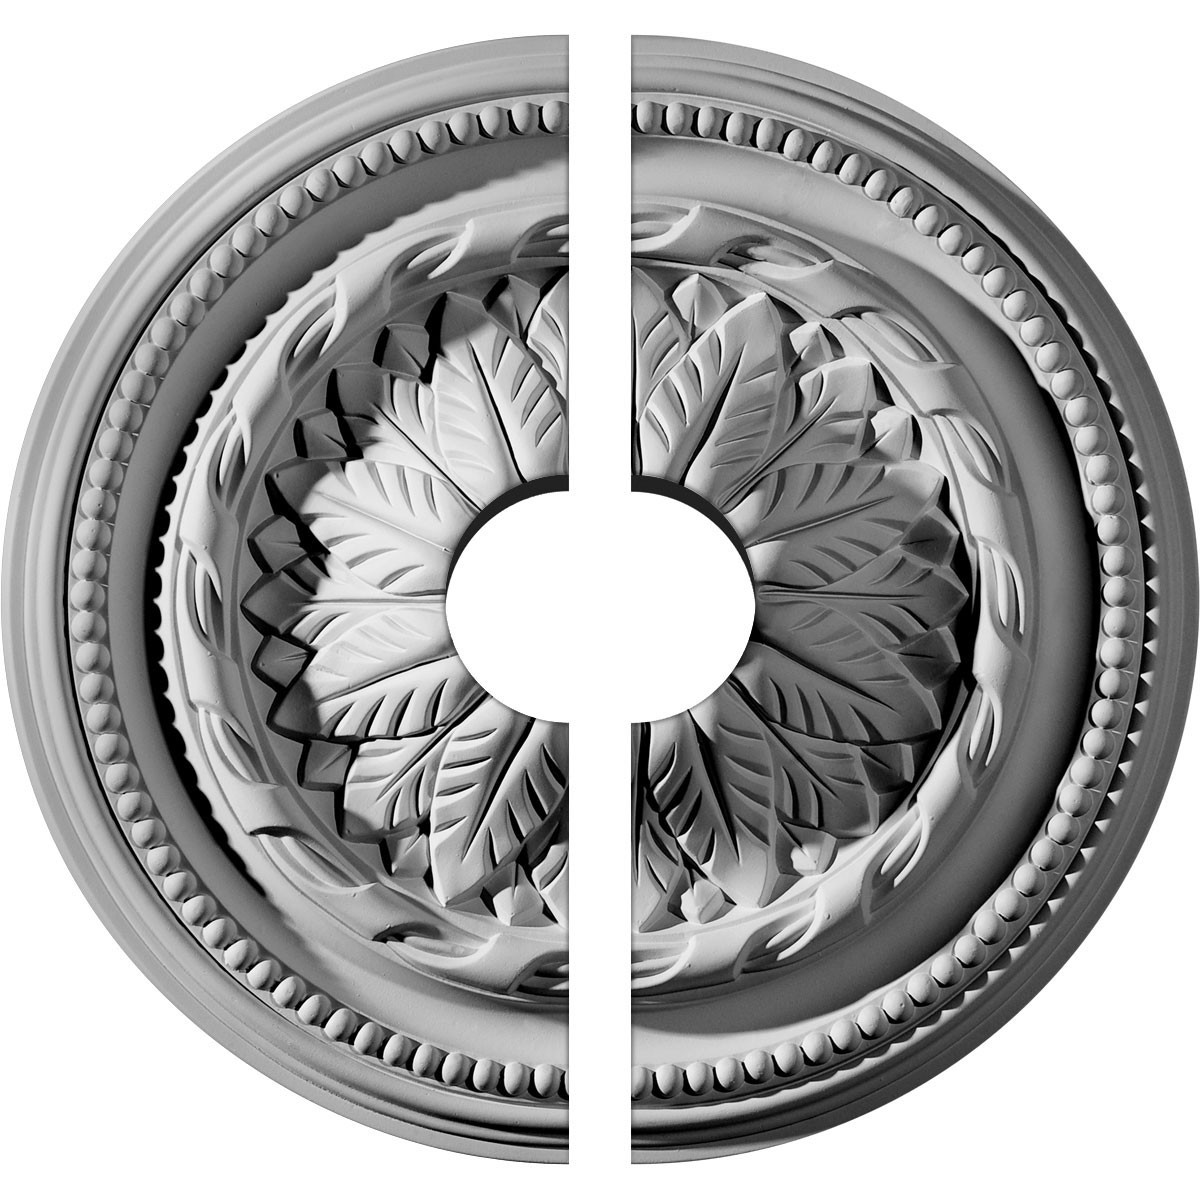 """EM-CM16WG2-03500 - 16""""OD x 3 1/2""""ID x 2 1/4""""P Wigan Ceiling Medallion, Two Piece (Fits Canopies up to 3 1/2"""")"""